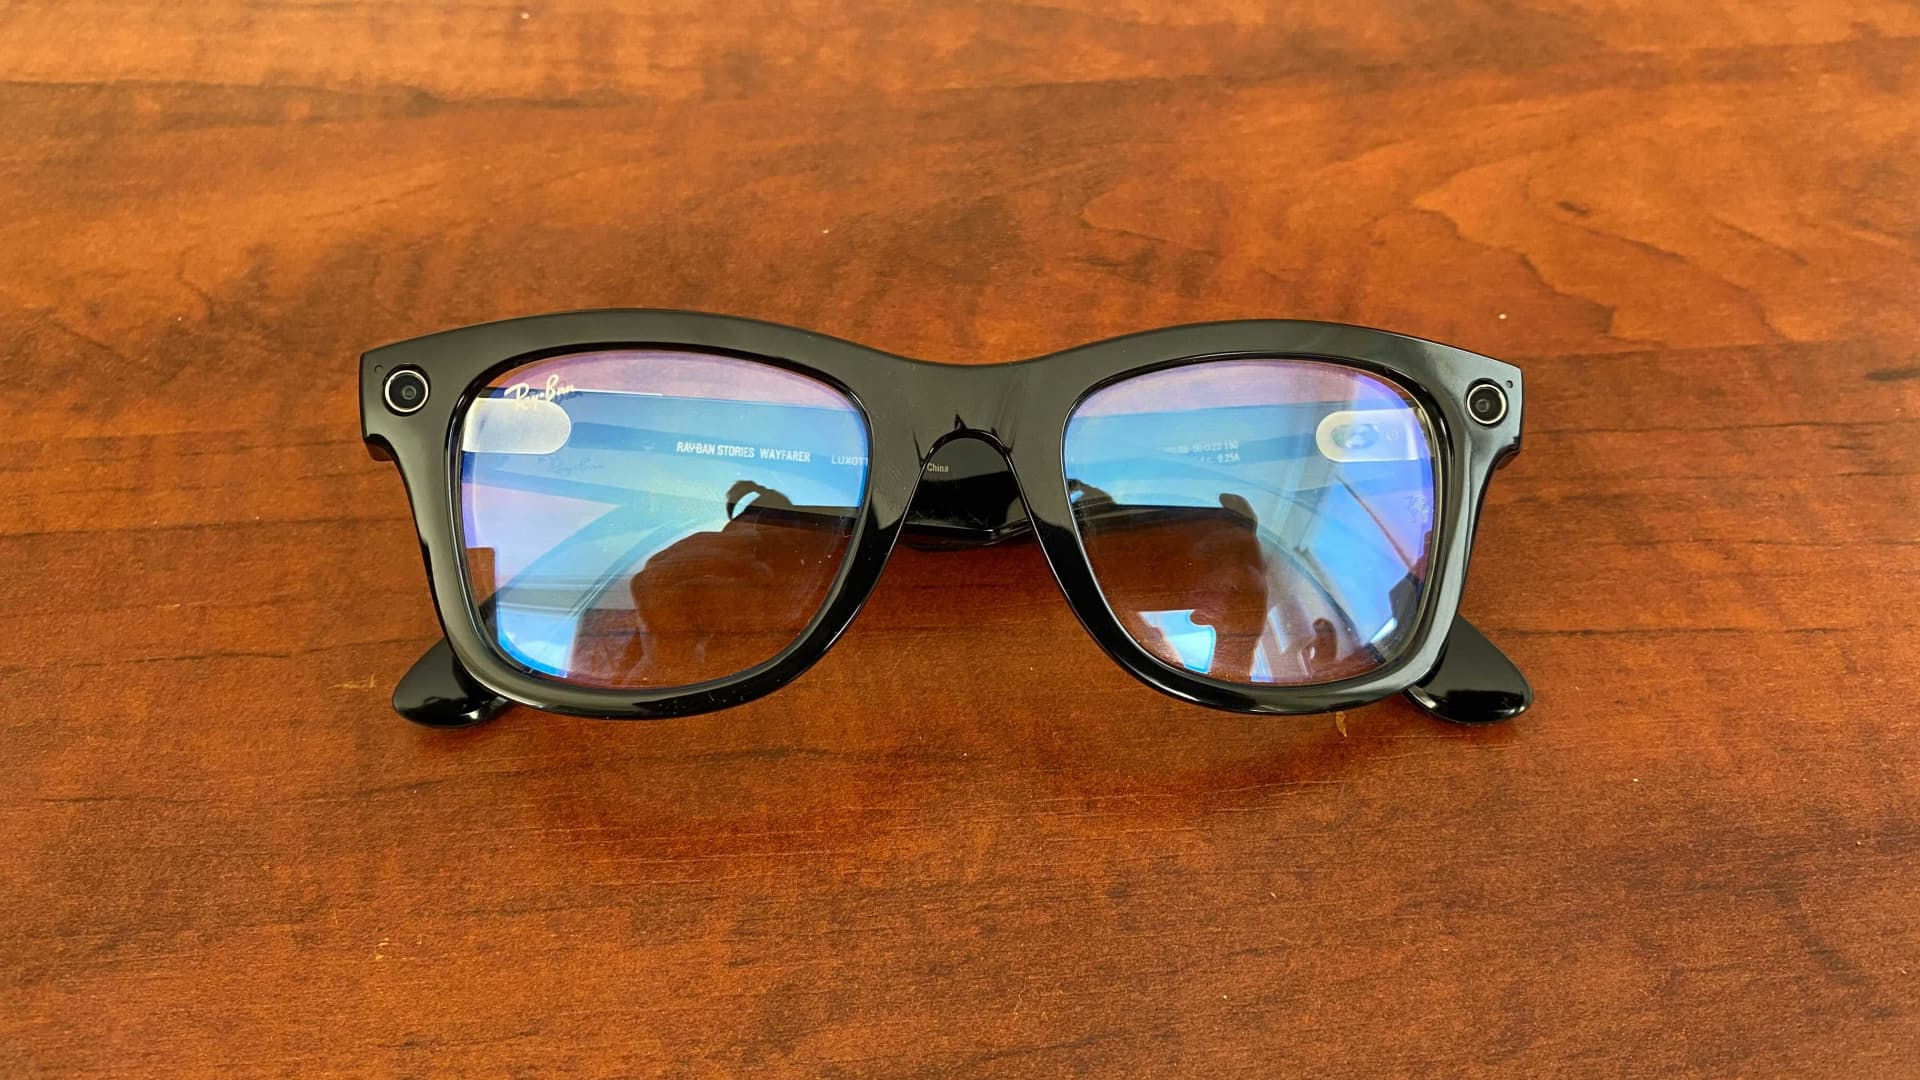 Facebook's Ray-Ban Stories Glasses